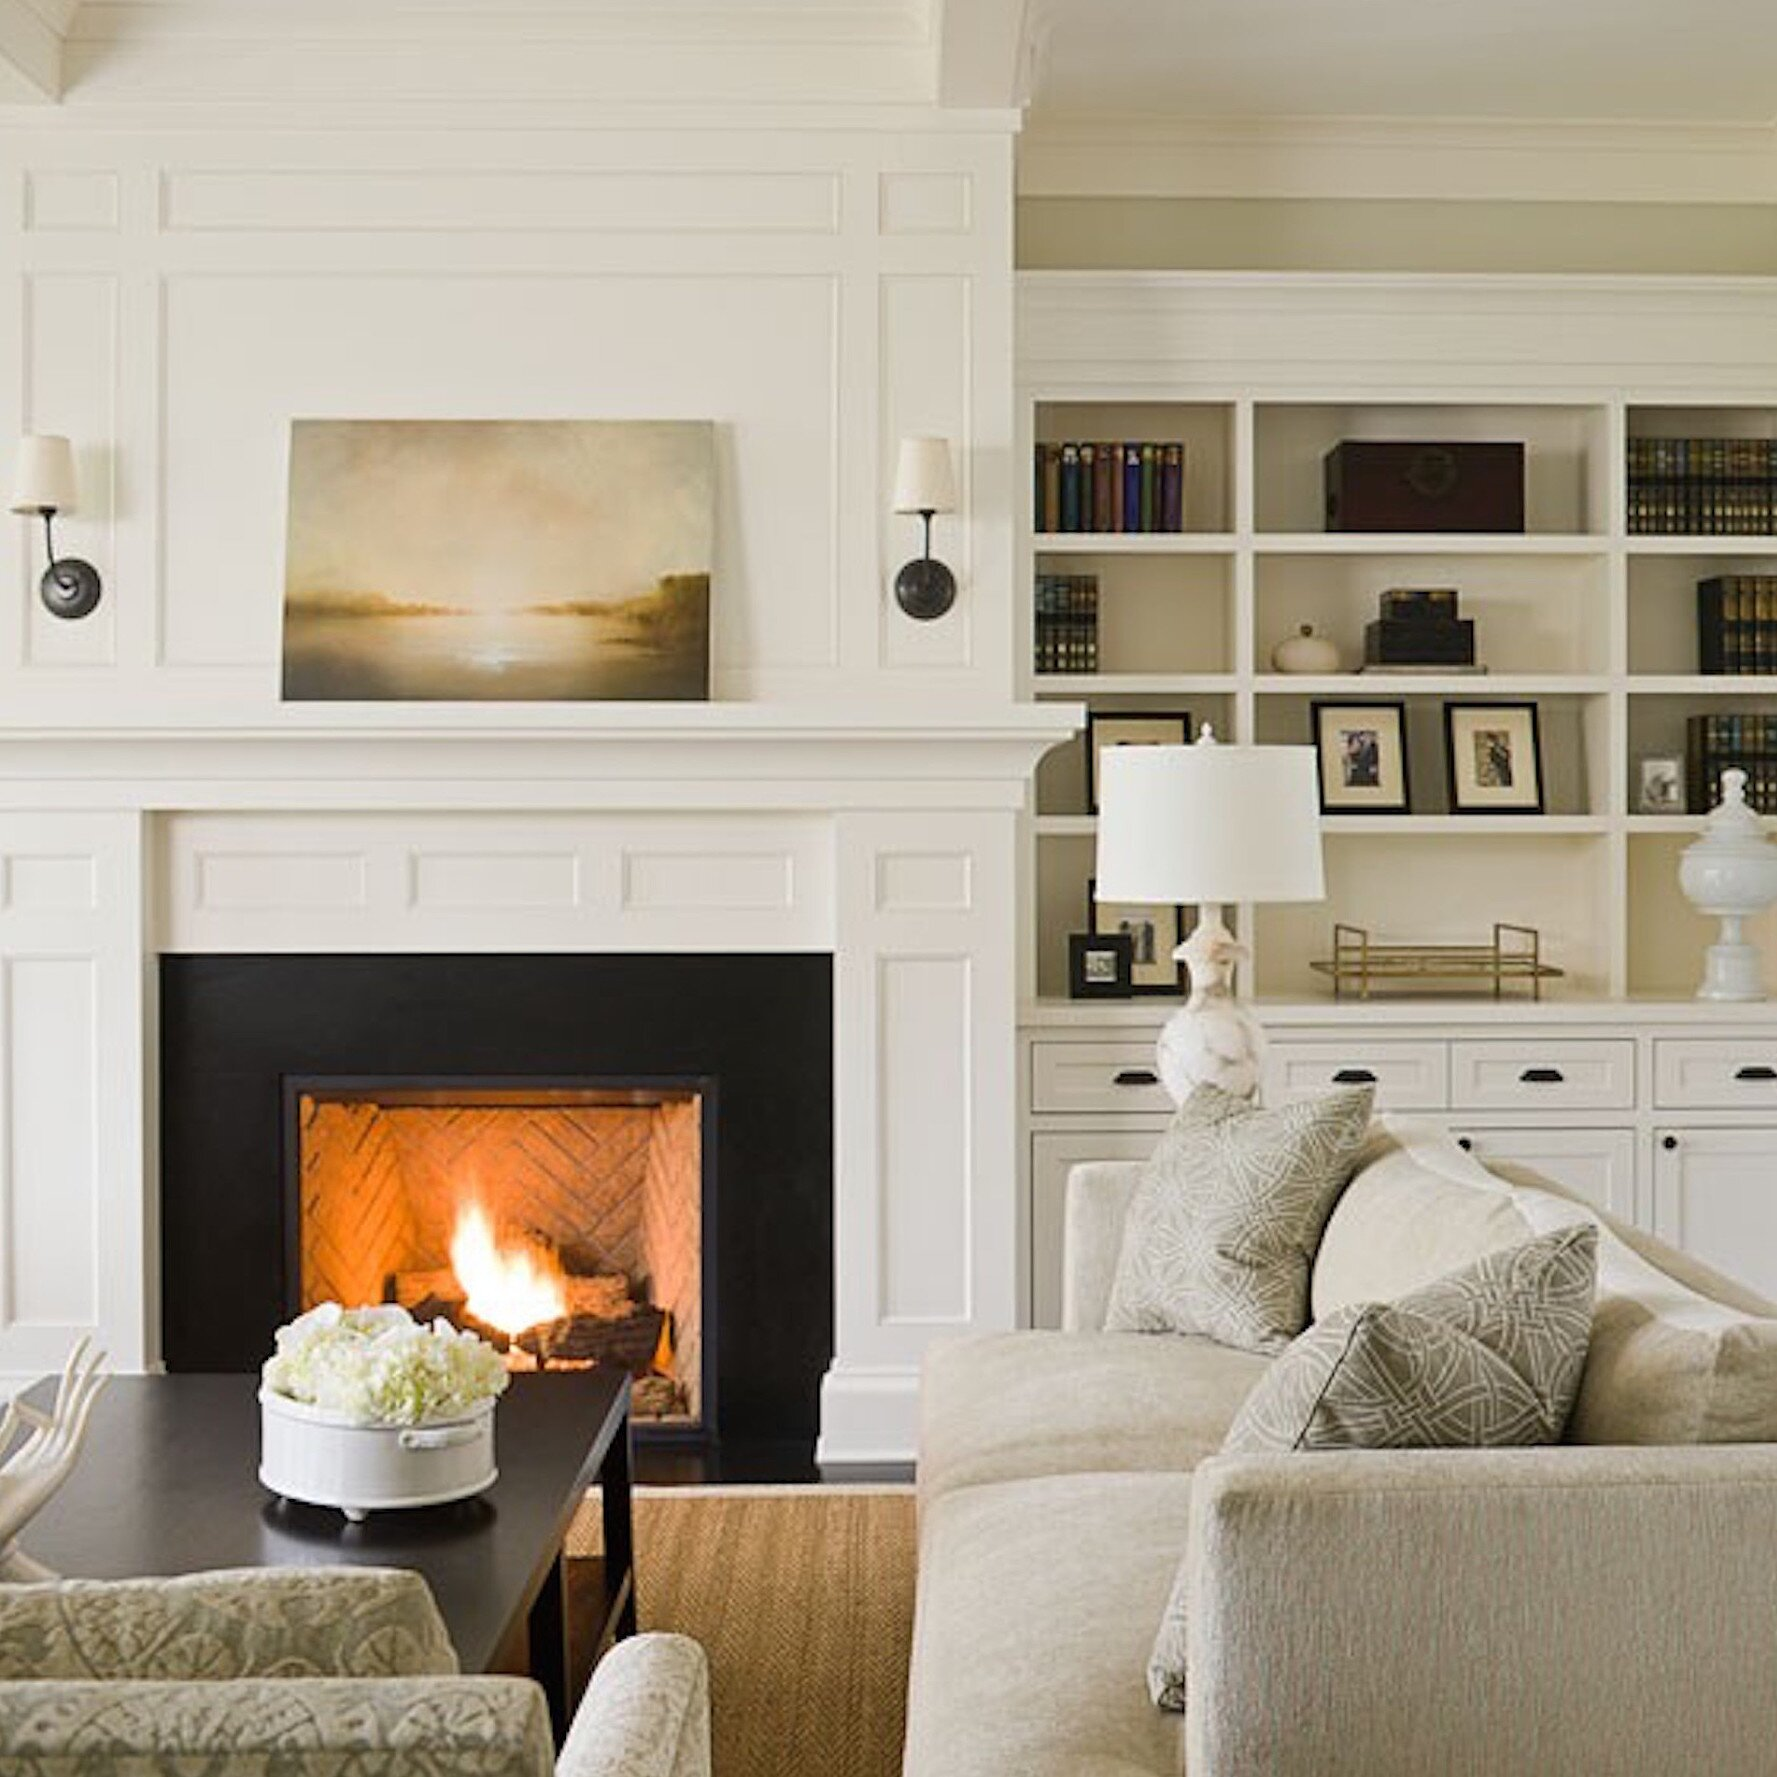 7 Living Room Color Ideas That Warm up Your Space | Martha ...